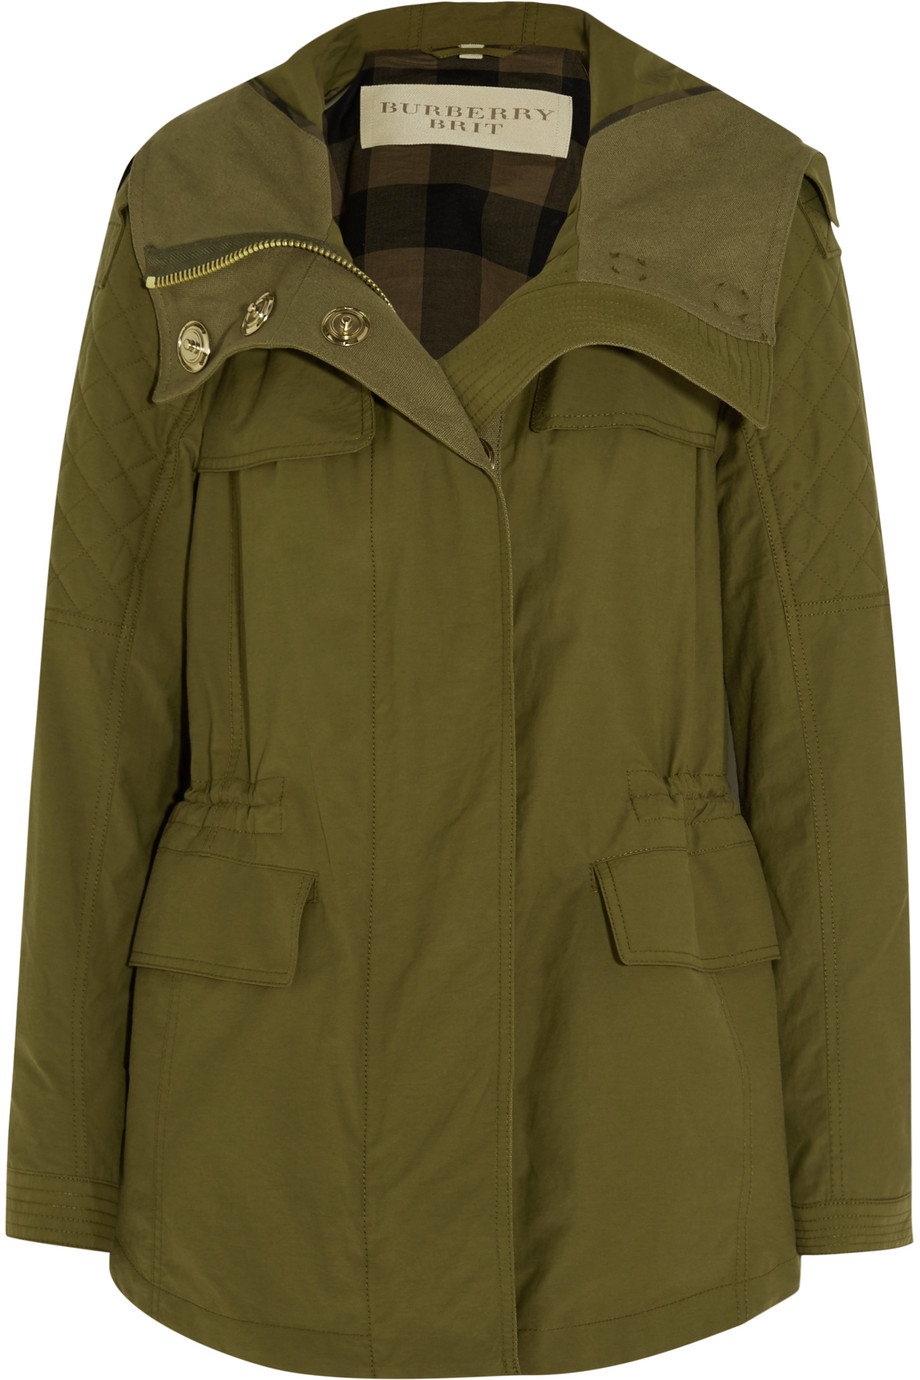 Burberry Brit Hooded Cotton-Blend Parka, Army Green, Women's, Size: 16